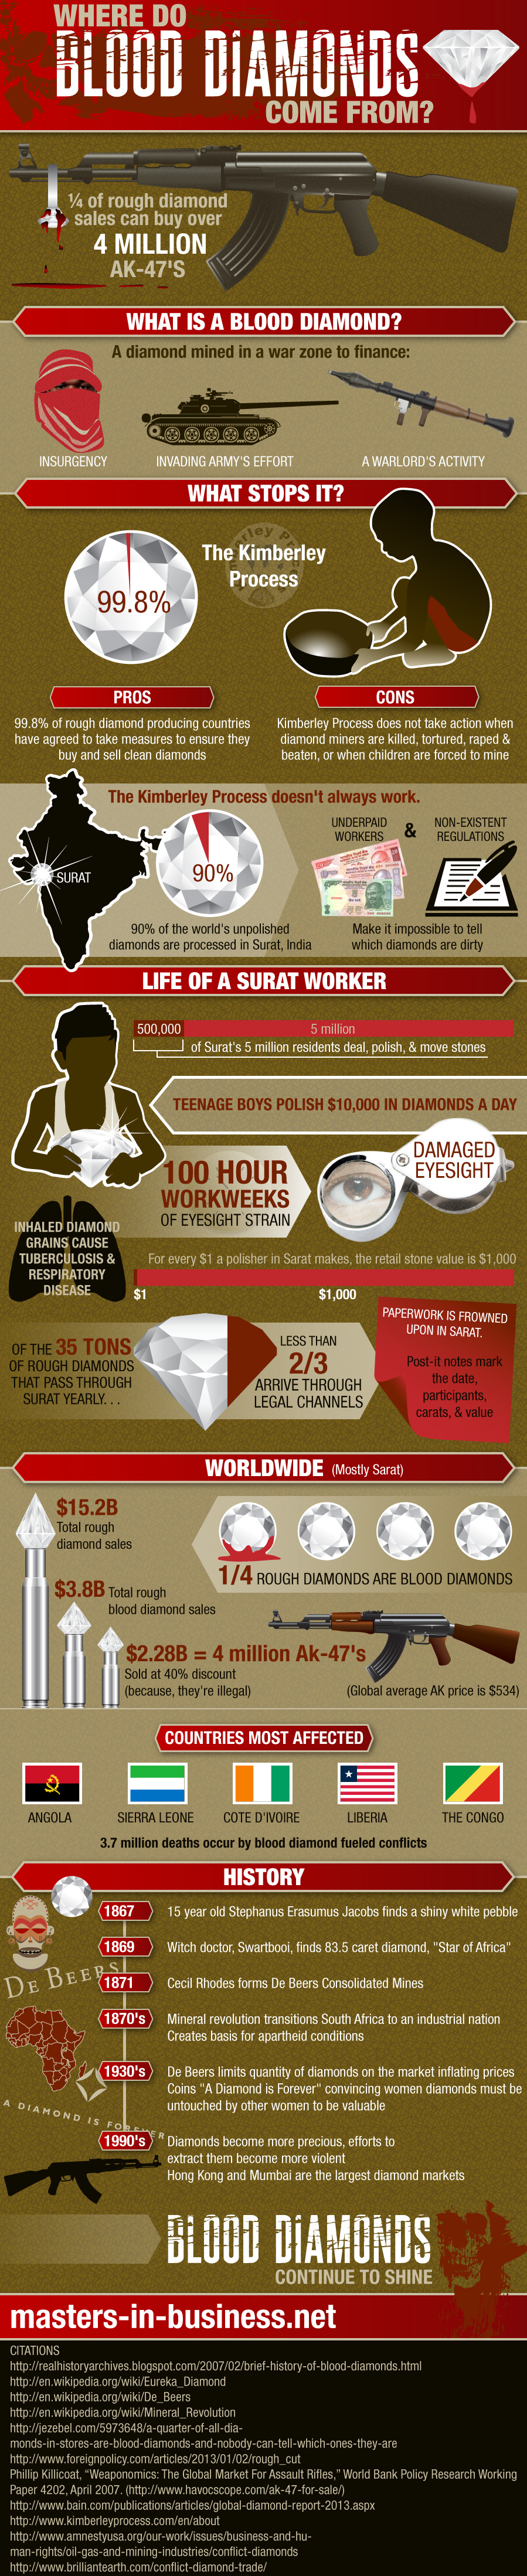 INFOGRAPHIC: Blood diamonds still a problem from hell